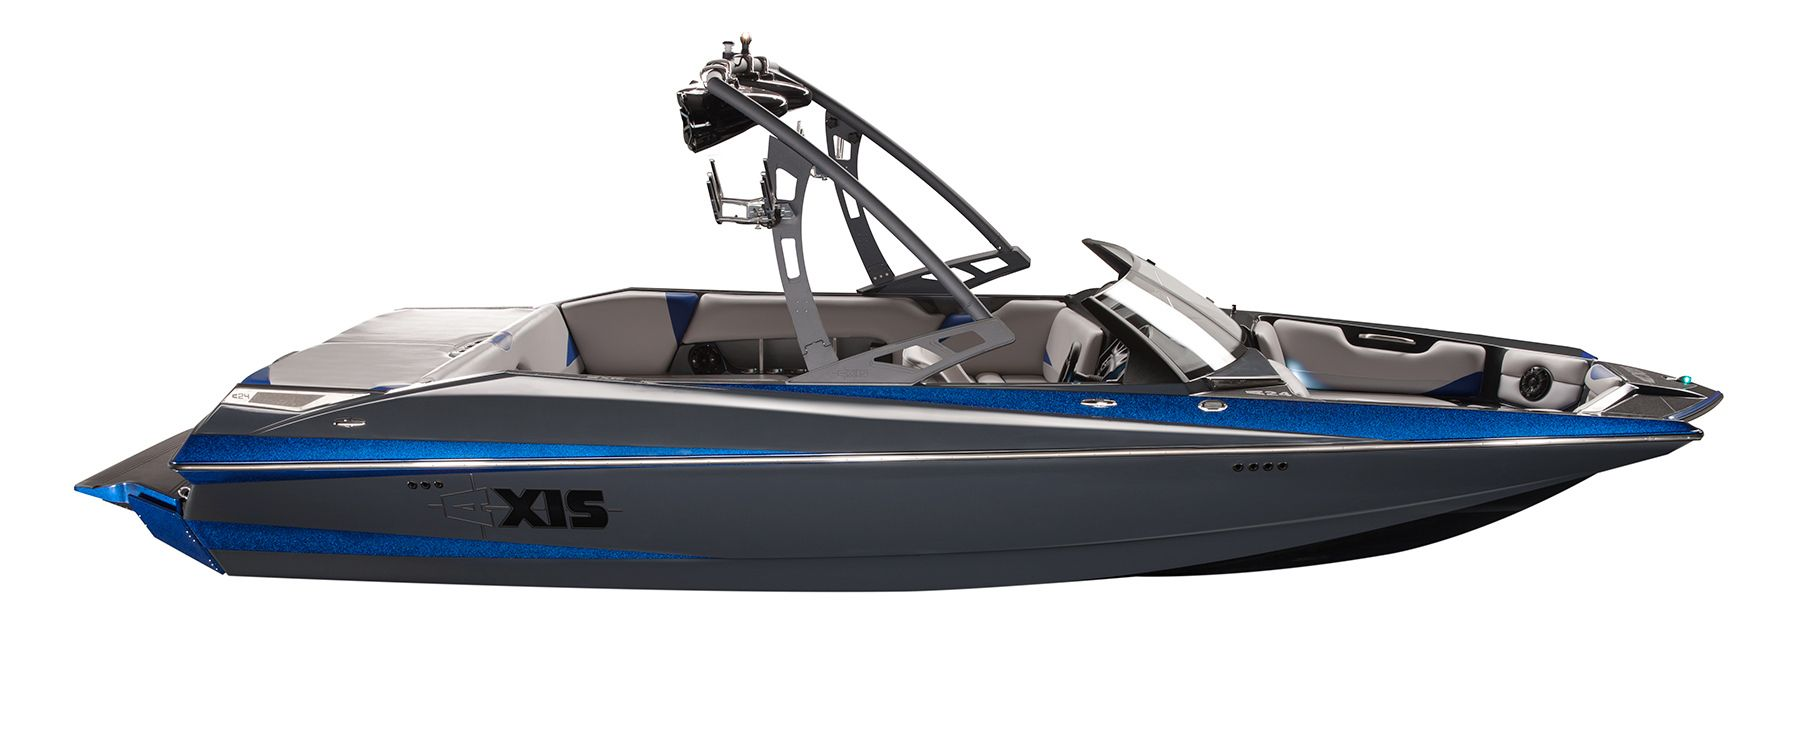 1axis_a24_boat_profile